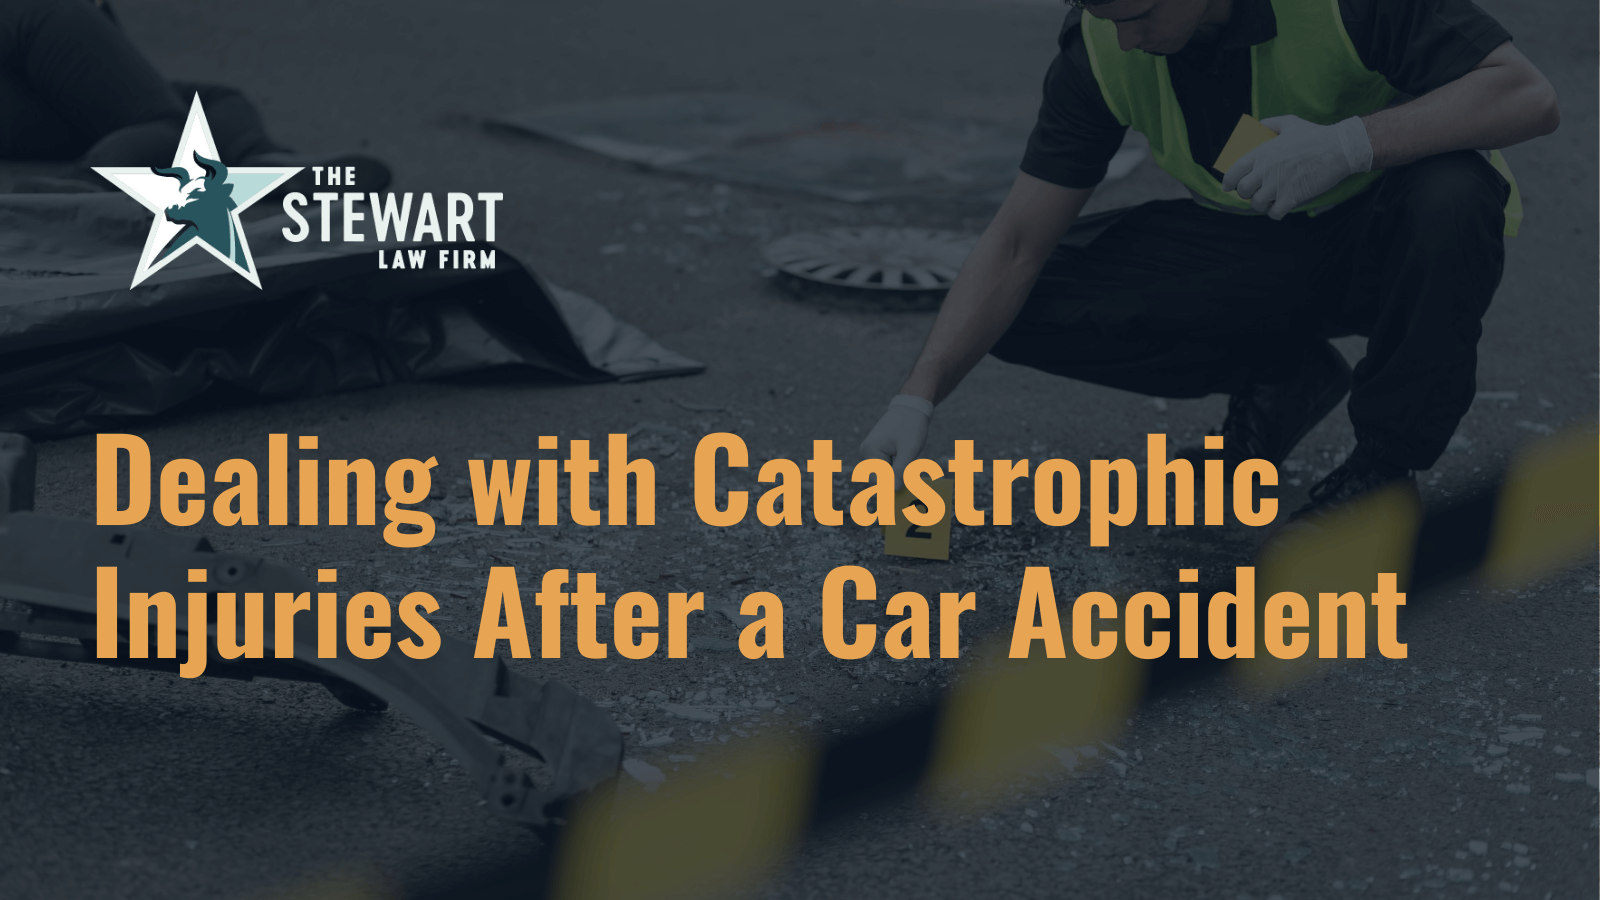 Dealing with Catastrophic Injuries After a Car Accident